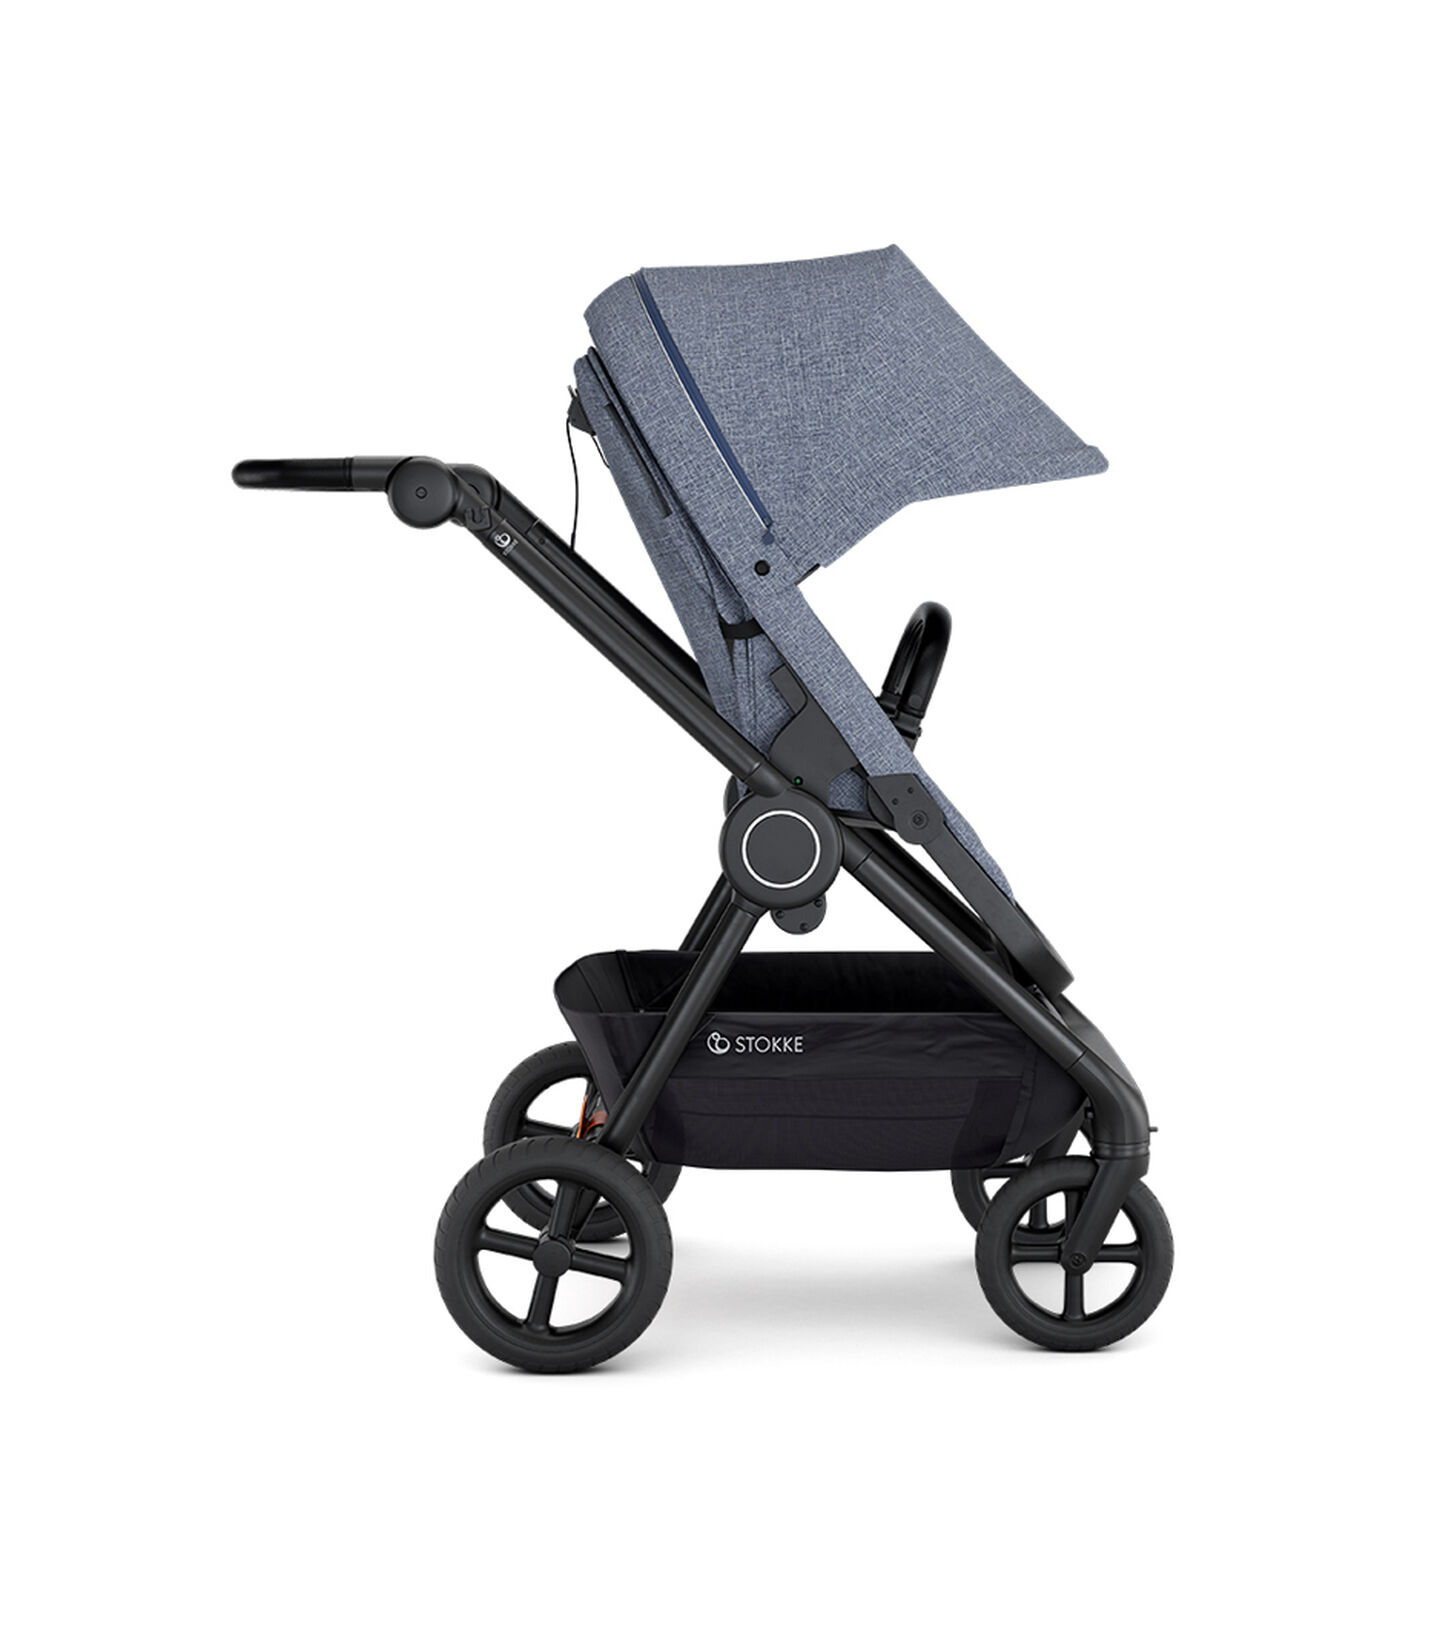 Stokke® Beat™ with Seat. Blue Melange. Forward facing.